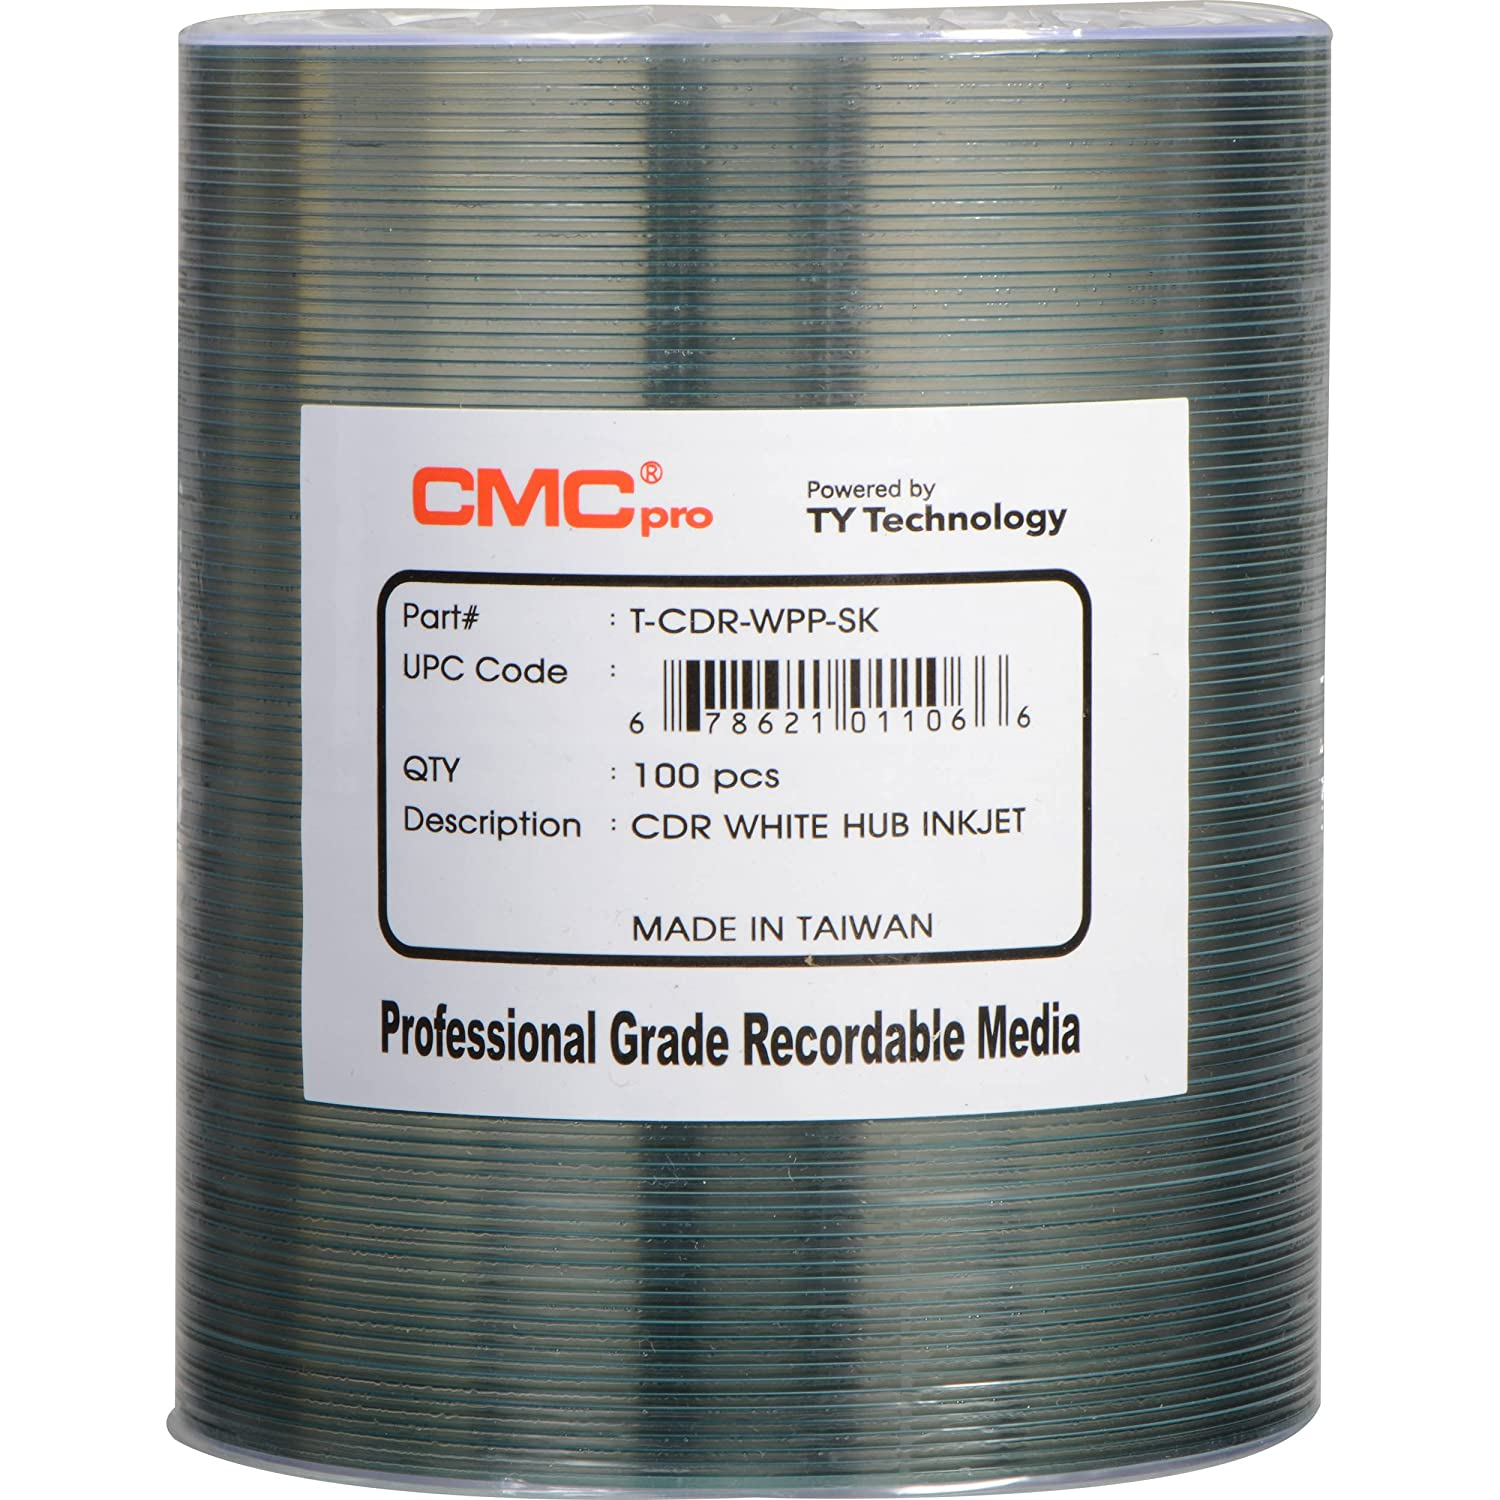 CMC Pro - Powered by TY Technology 48X White Inkjet Hub Printable CDR 80Min/700MB in 100 Pack J-CDR80WPP100SK